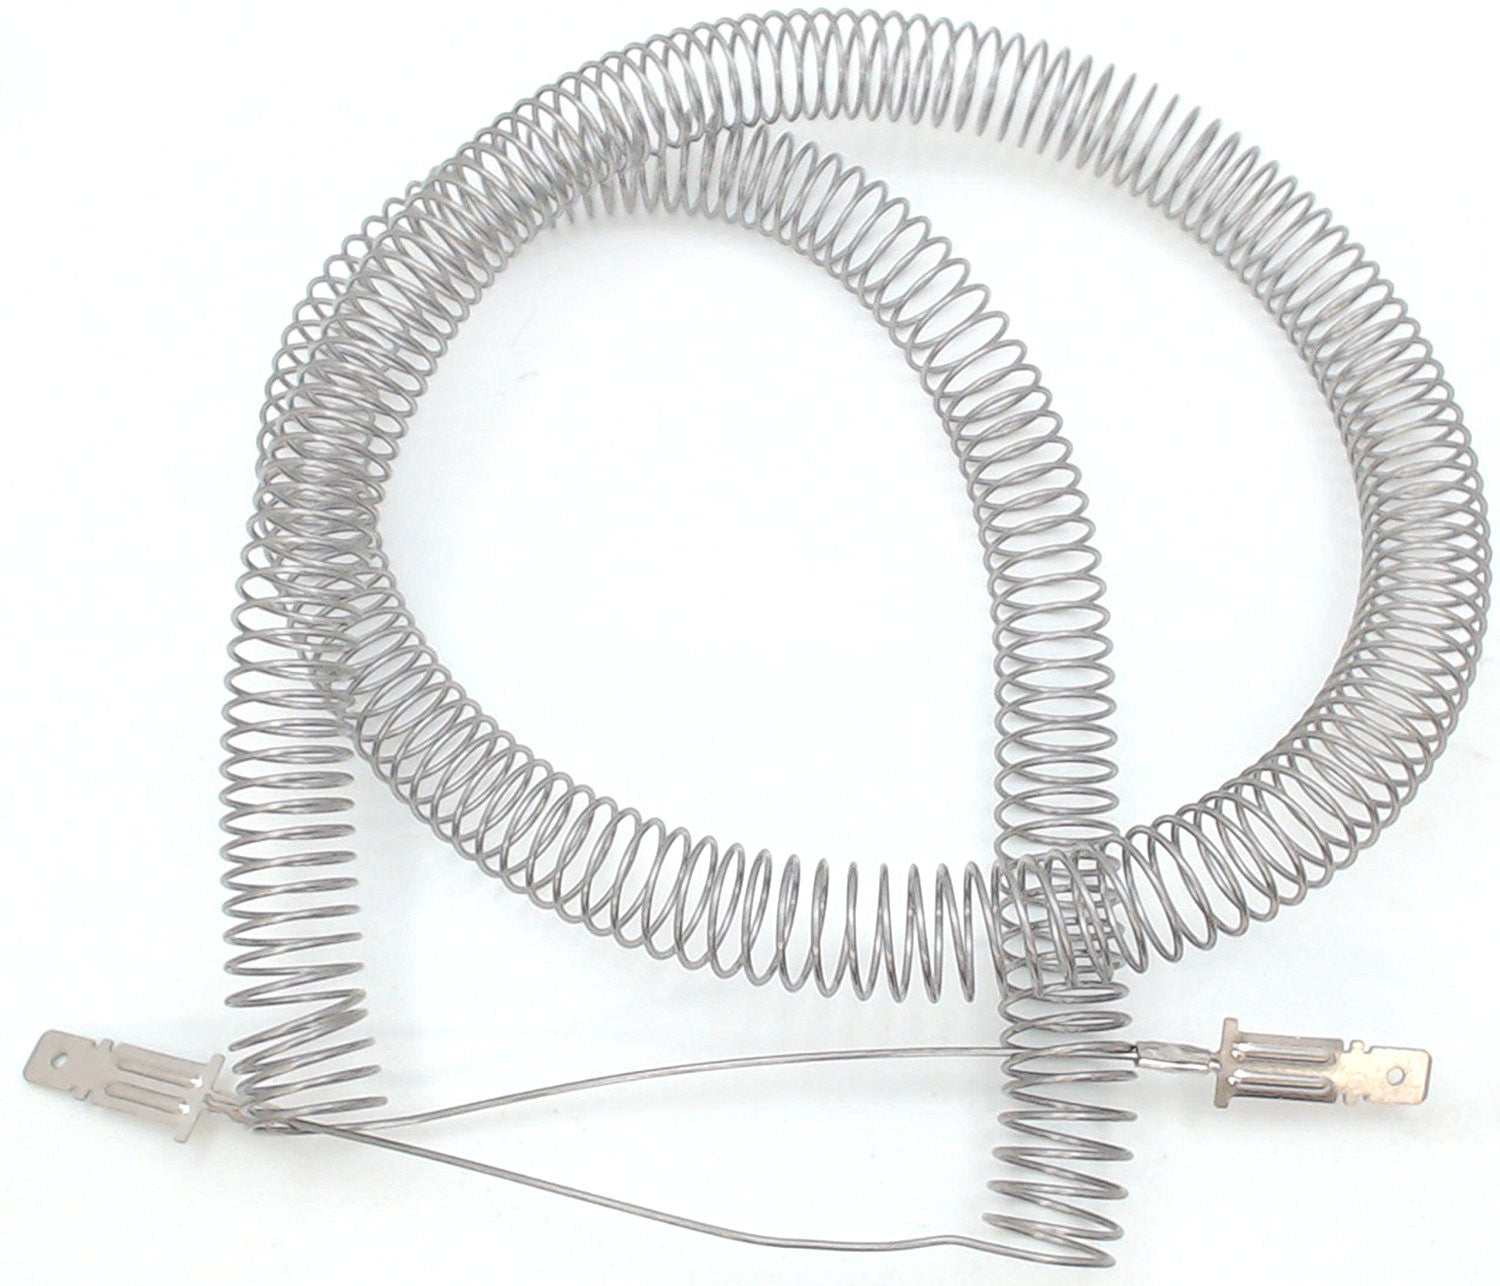 Frigidaire FDE336LBS2 Electric Dryer Heating Element Replacement